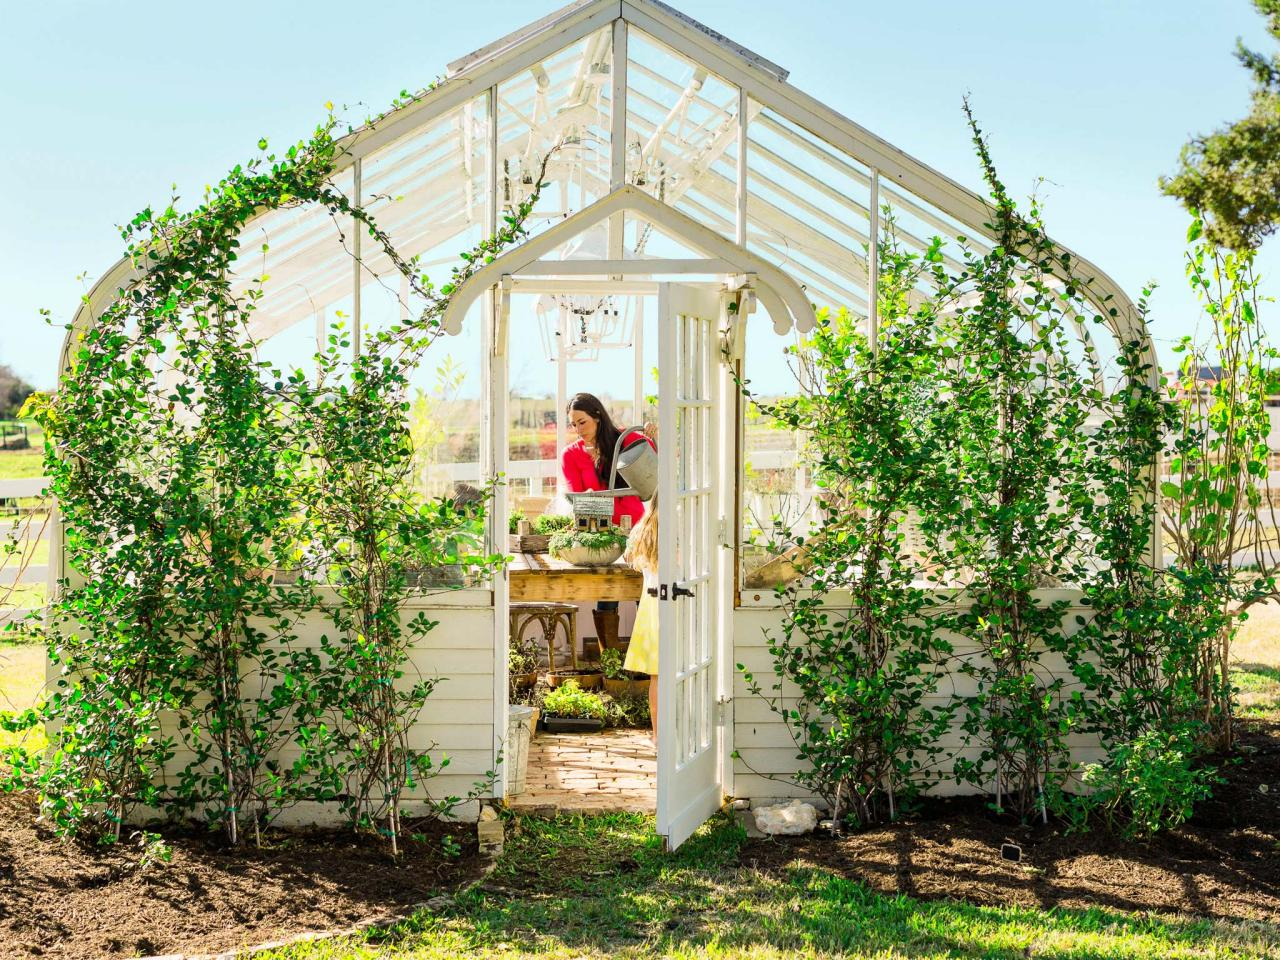 Greenhouse Inspiration - Joanna Gaines Working in Her Greenhouse | HGTV